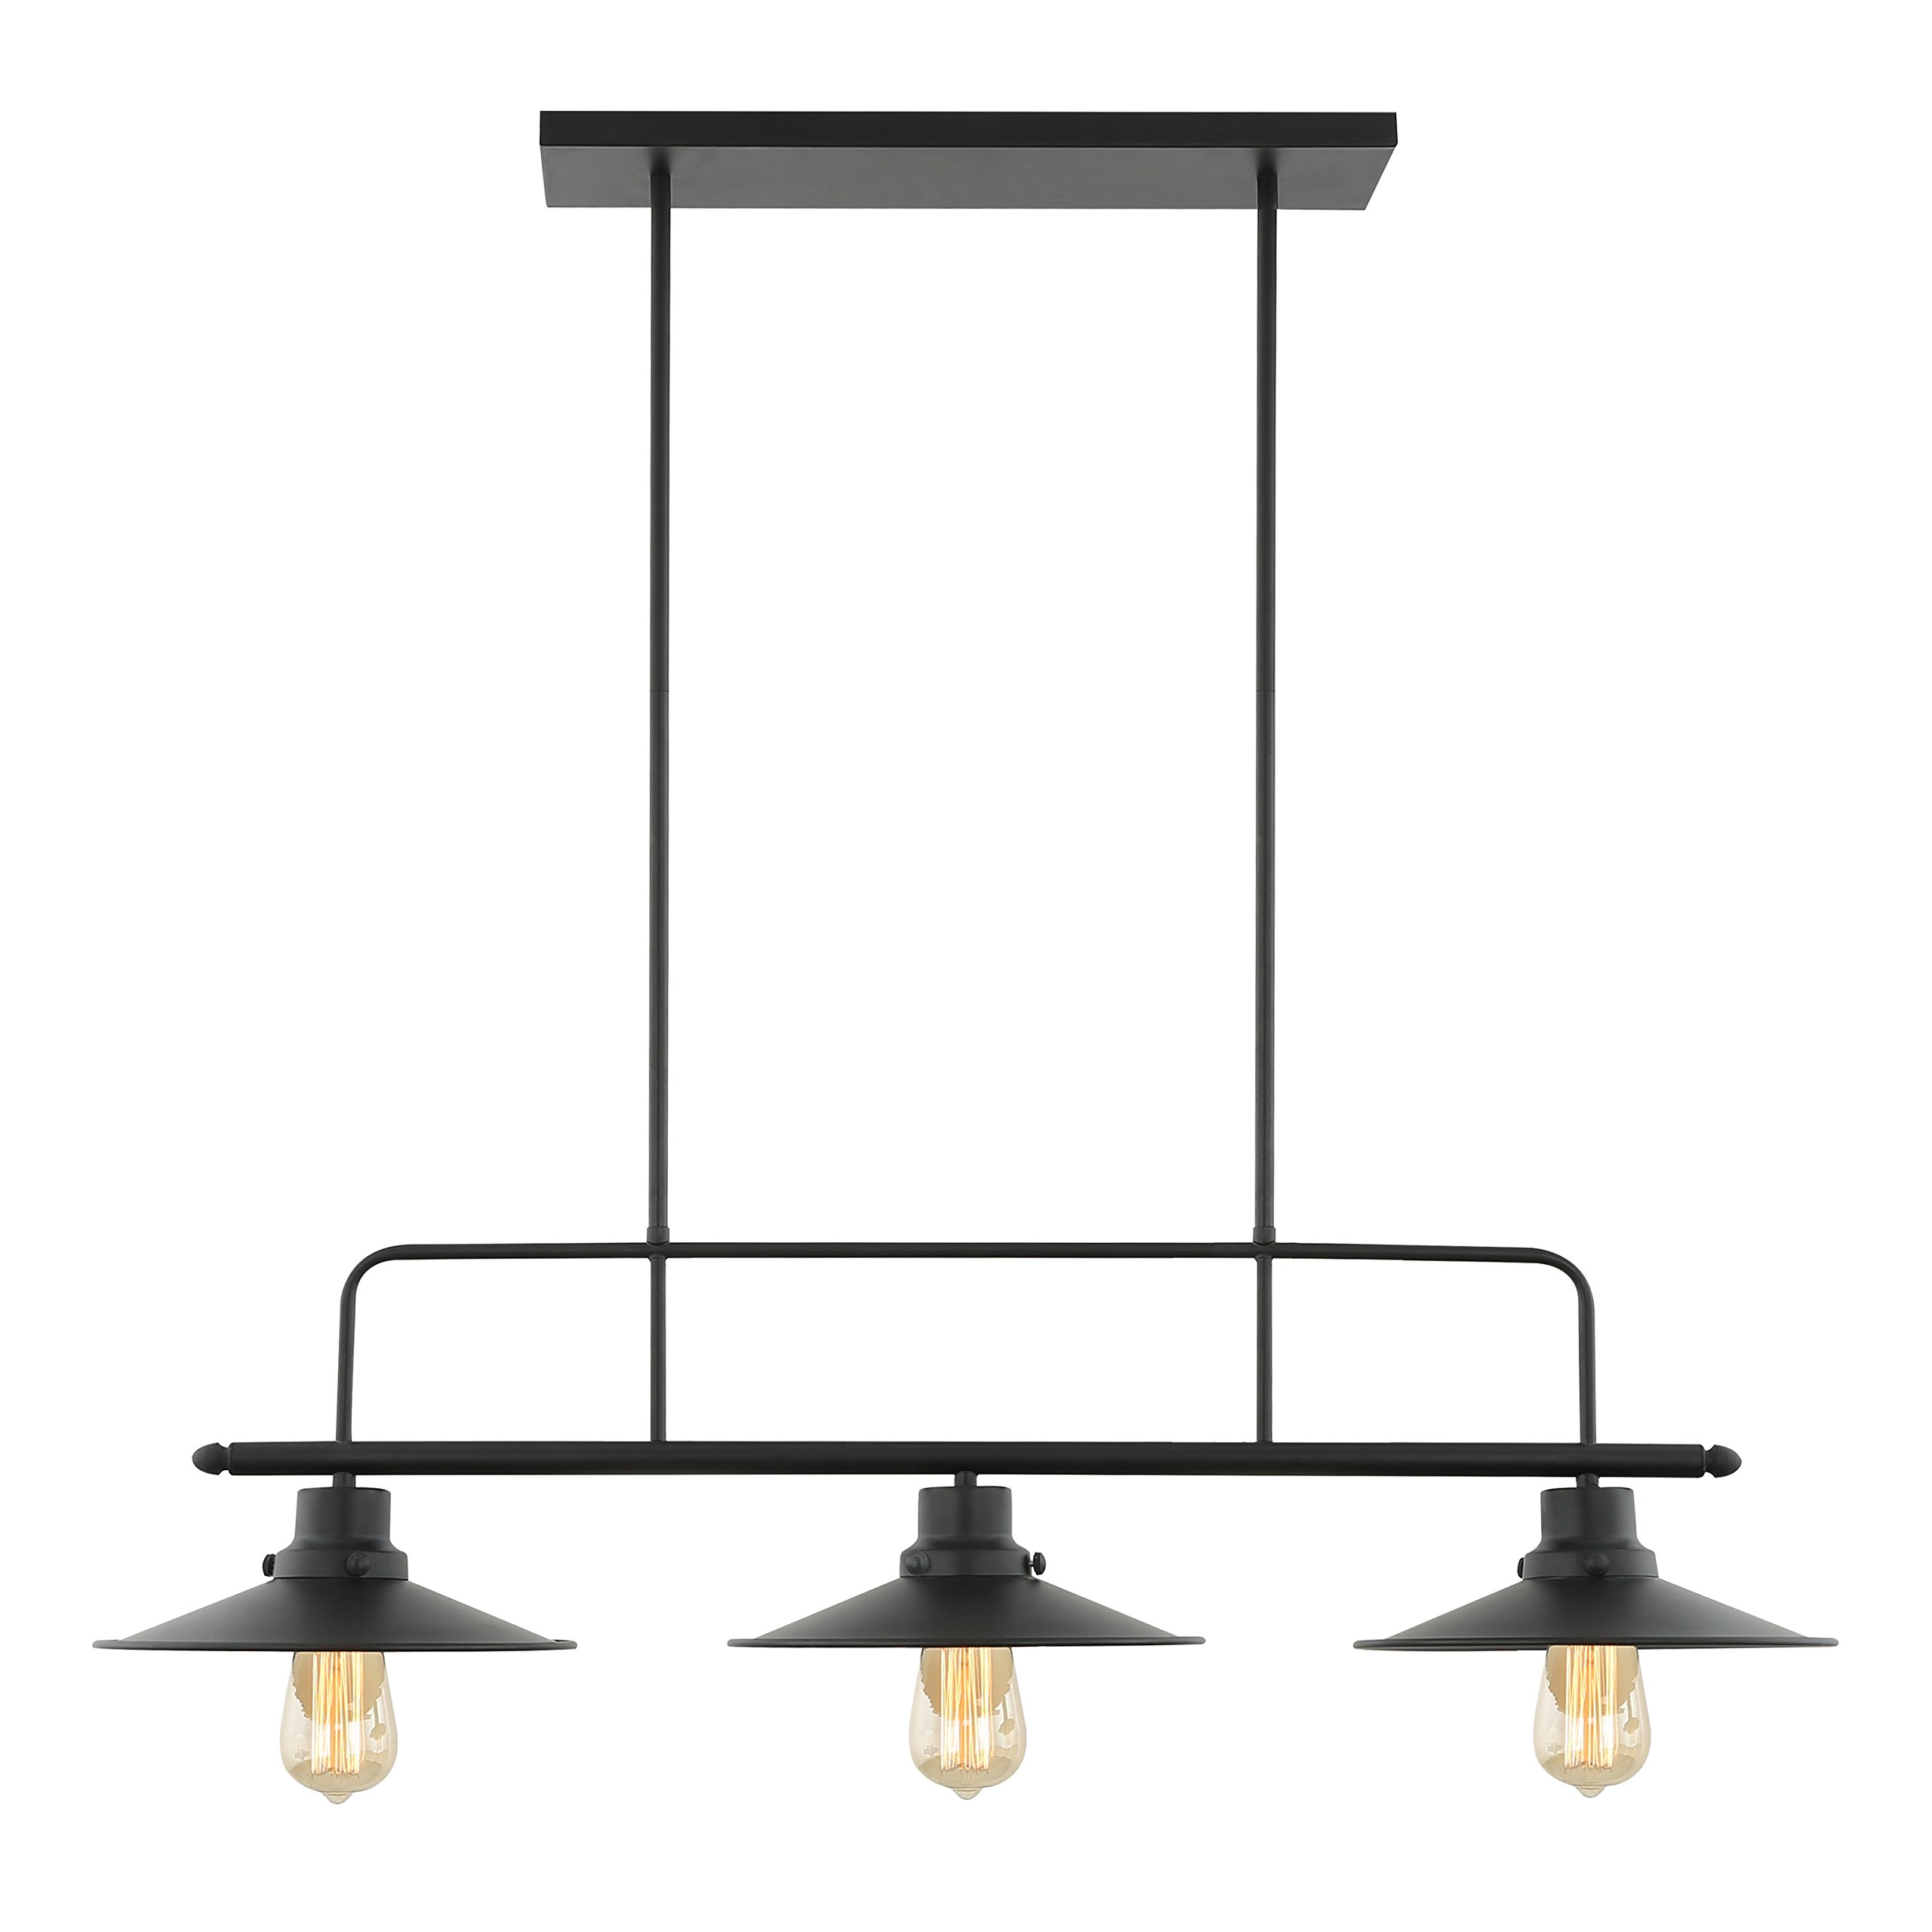 Light Society Margaux 3-Light Kitchen Island Pendant, Matte Black, Vintage Modern Industrial Chandelier (LS-C114) by Light Society (Image #1)